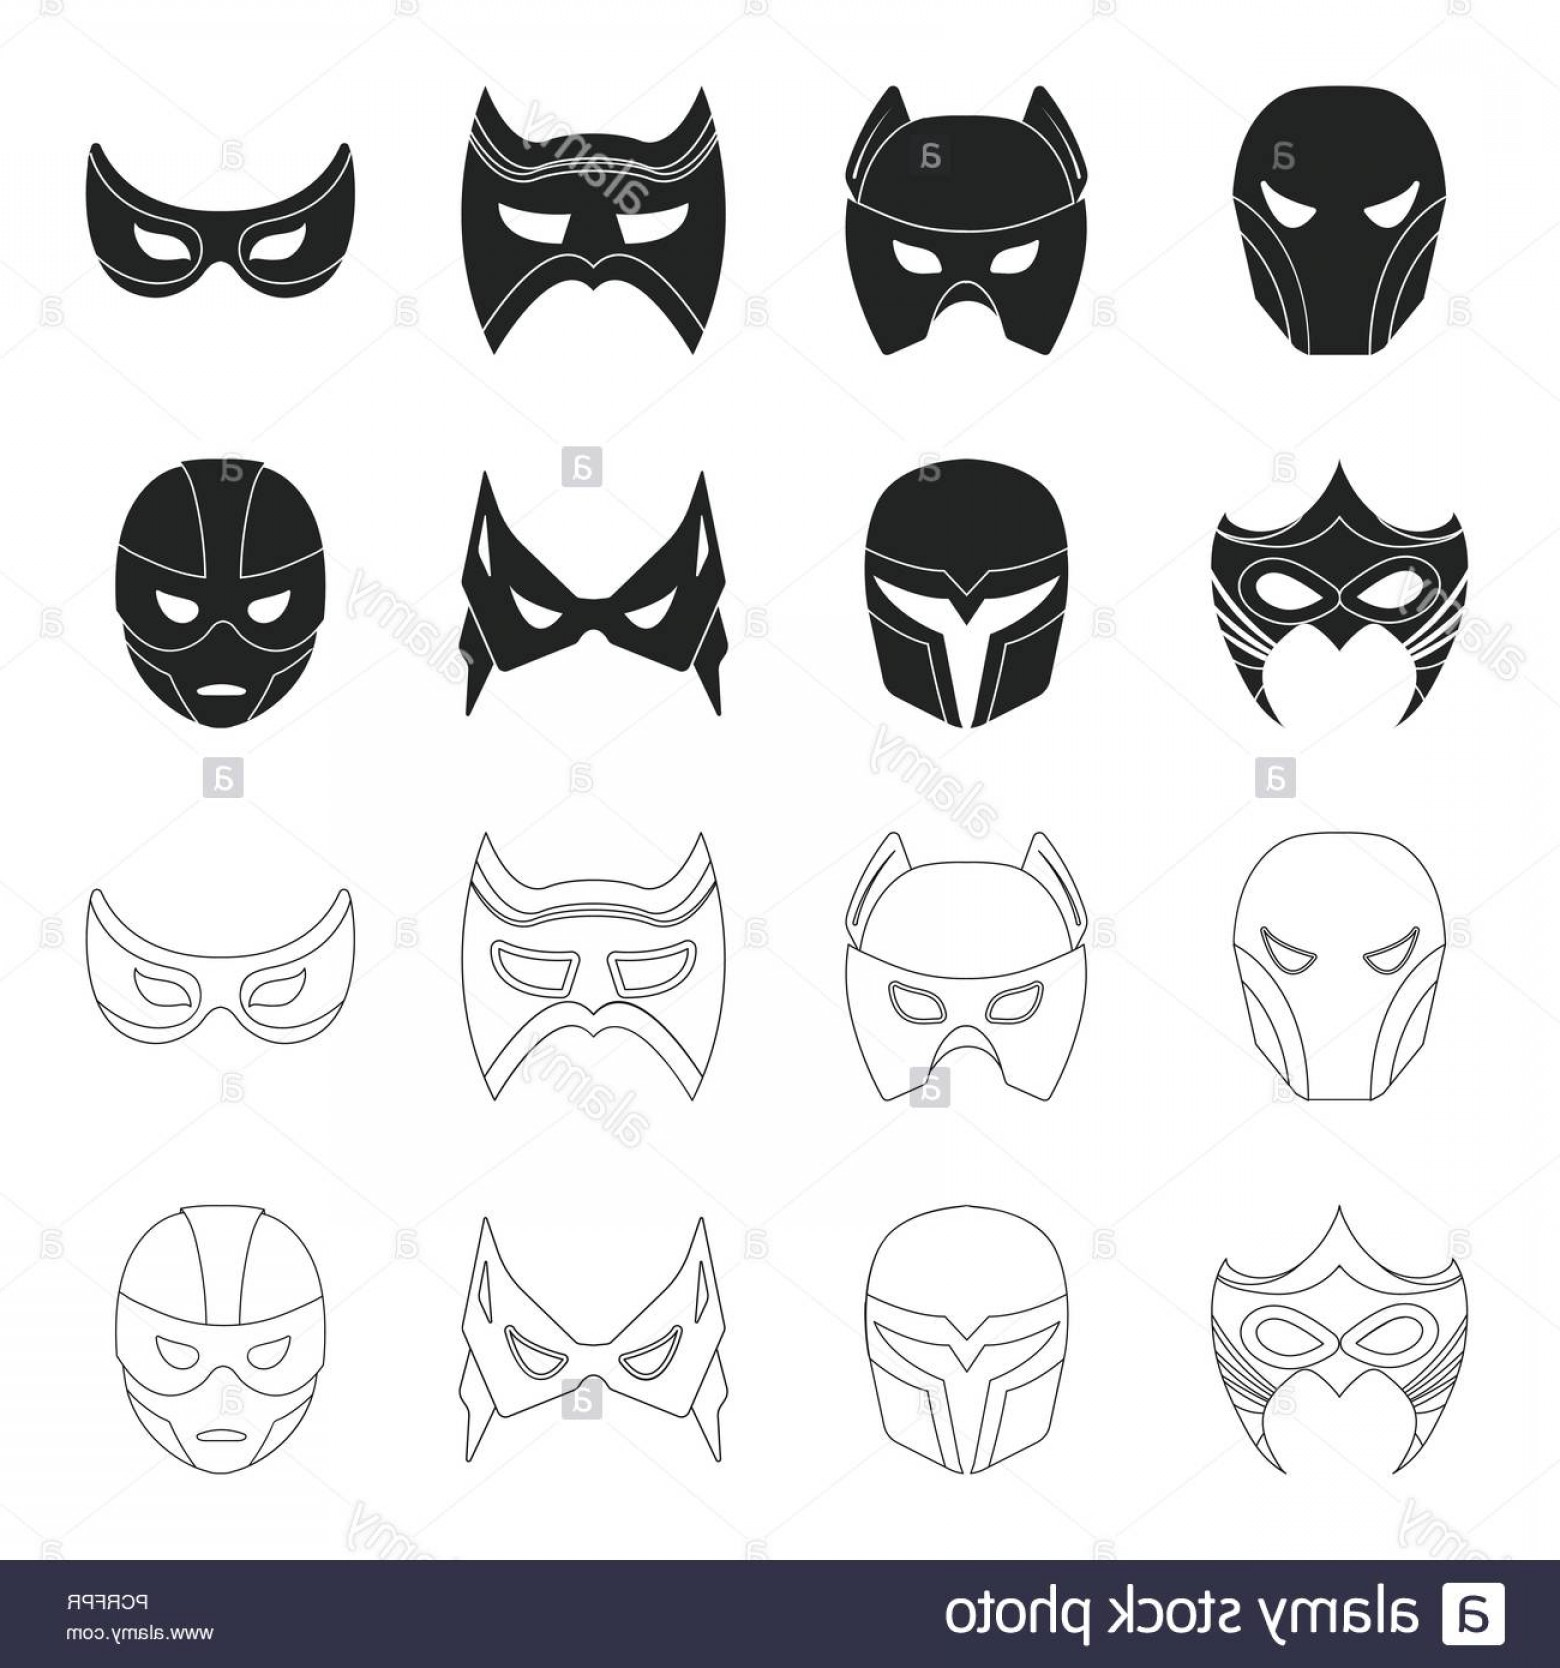 Batman Mask Sketch Vector: Mask On The Head And Eyes Super Hero Mask Set Collection Icons In Blackoutline Style Vector Symbol Stock Illustration Image